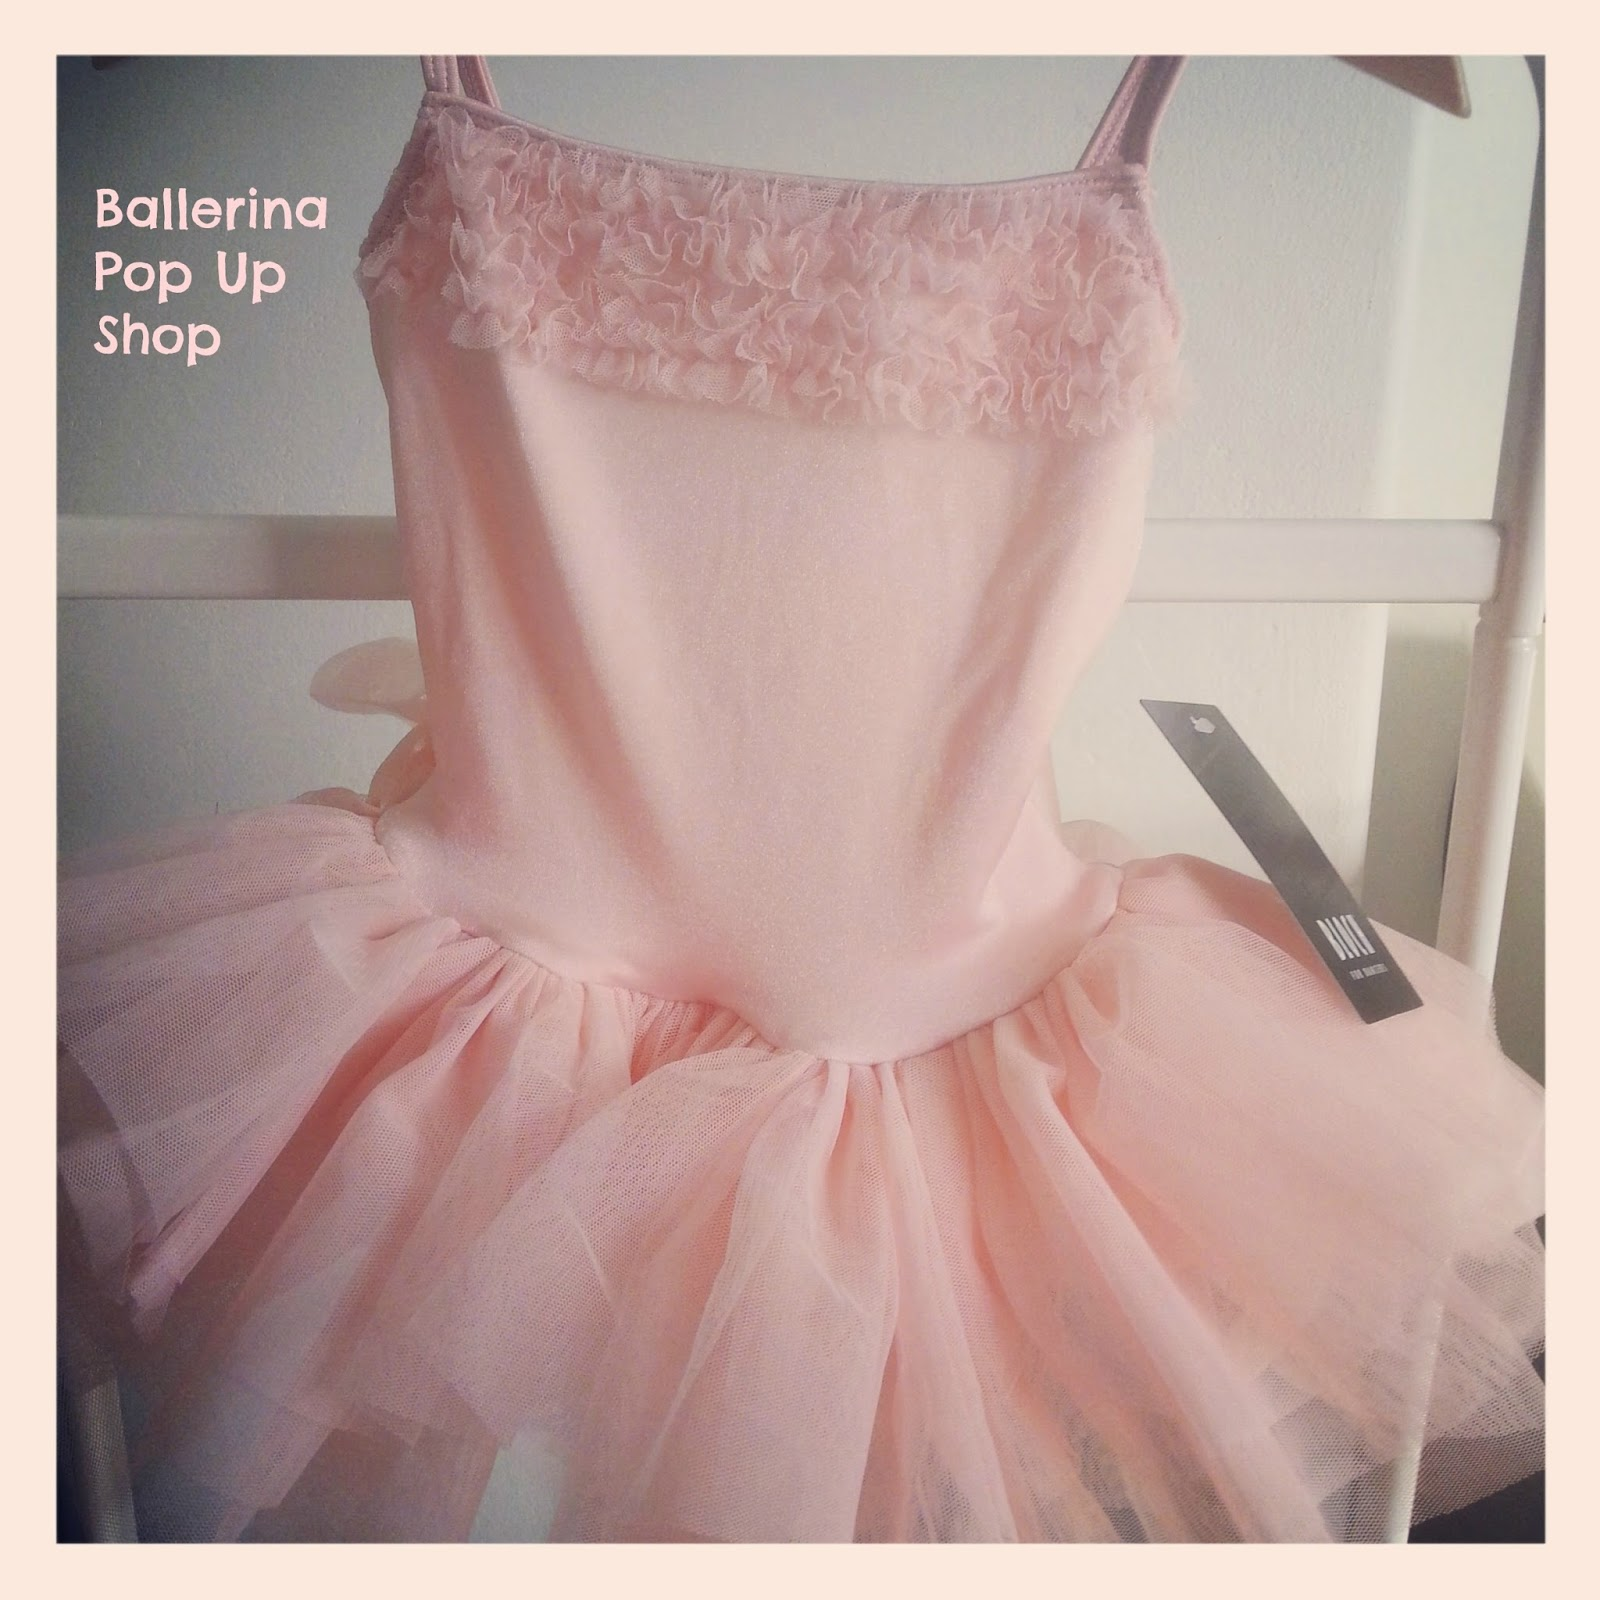 Ballerina Pop Up Shop